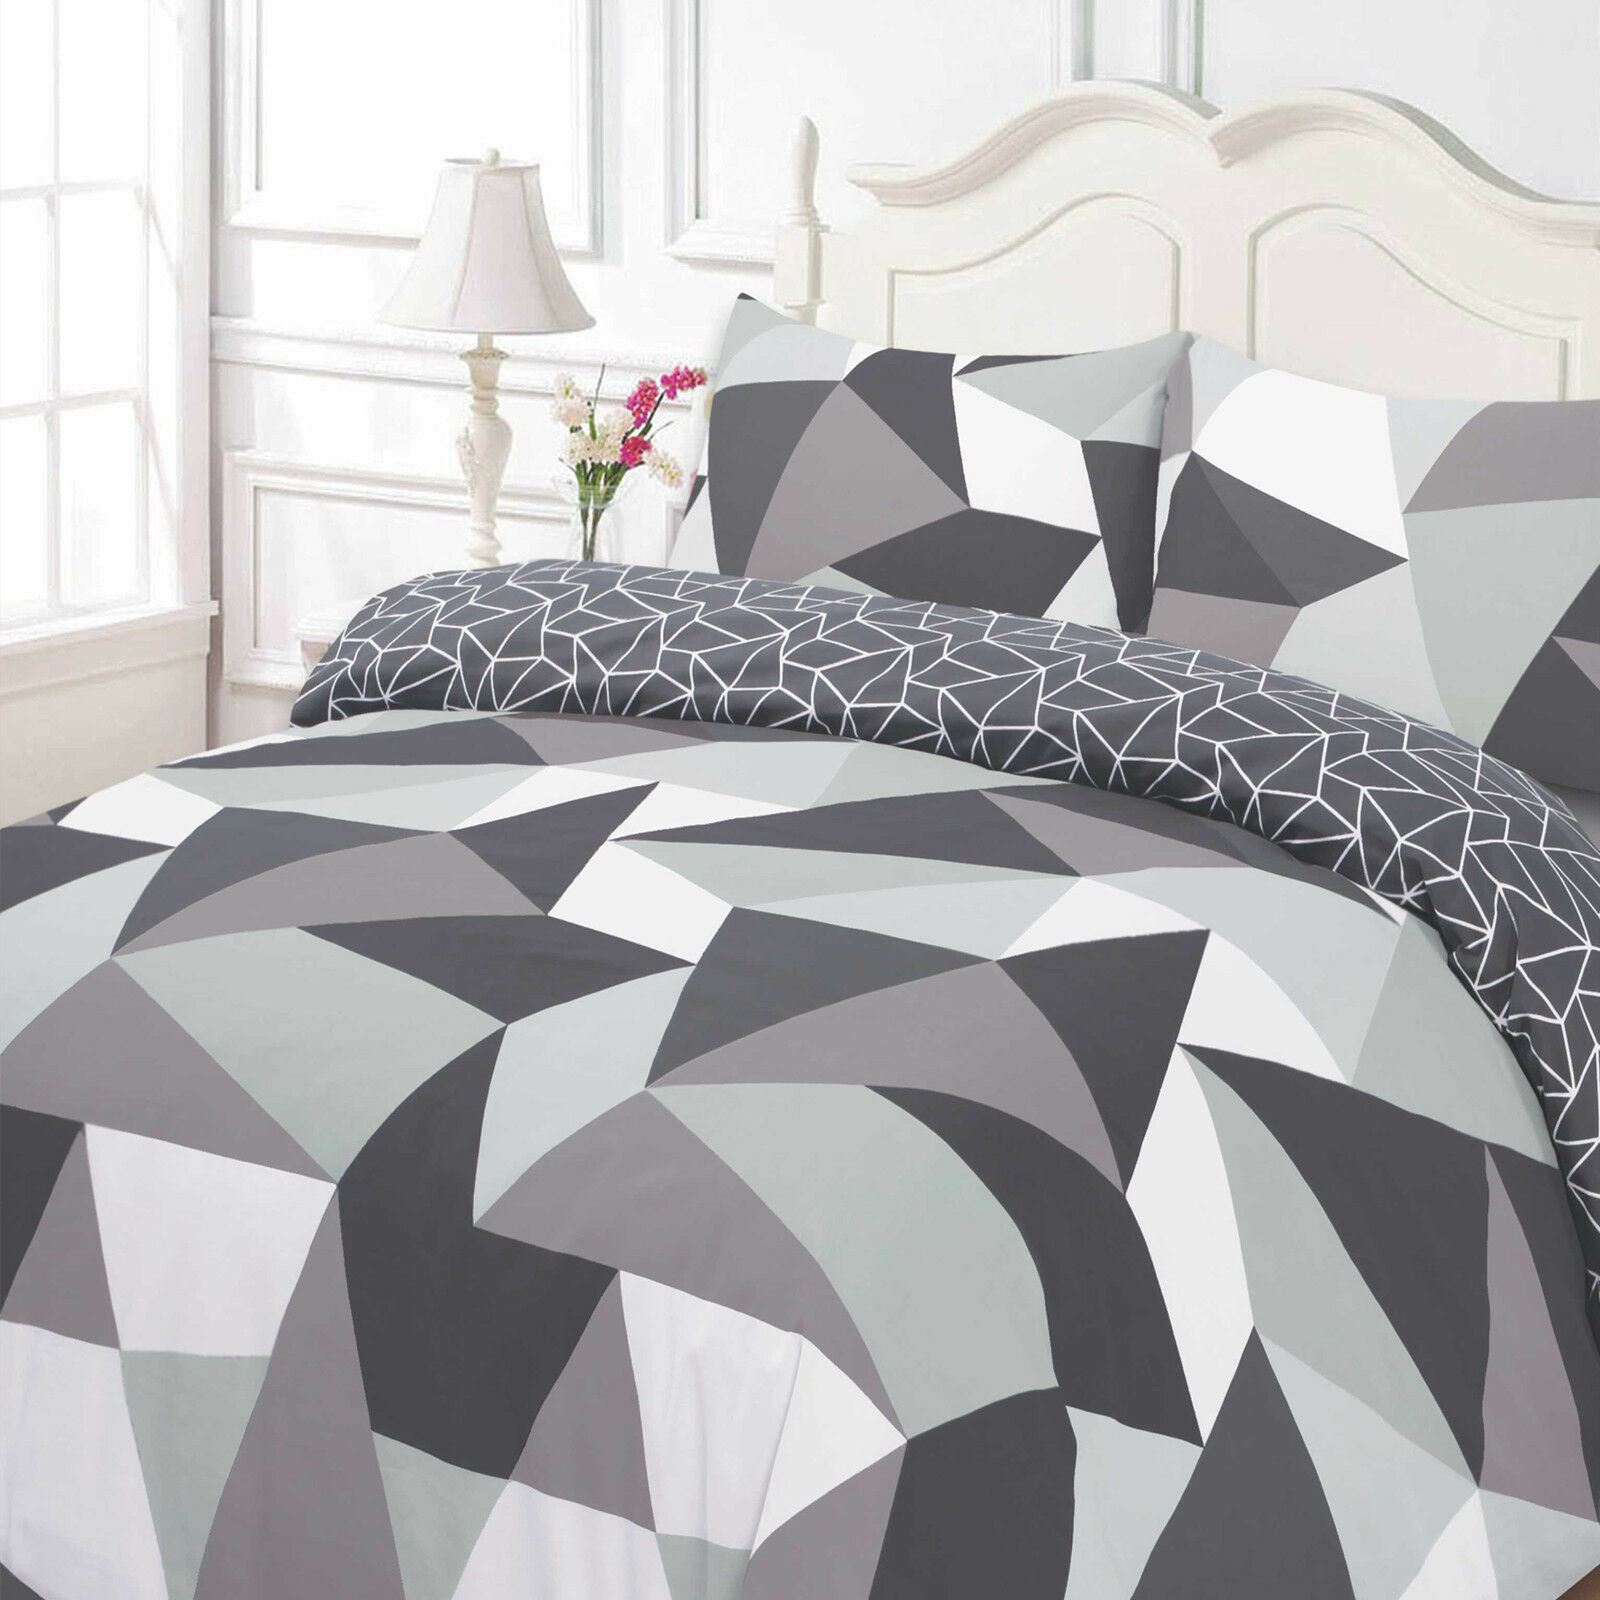 Dreamscene Geometric Shapes Duvet Cover With Pillowcase Bedding Set Black Grey Ebay